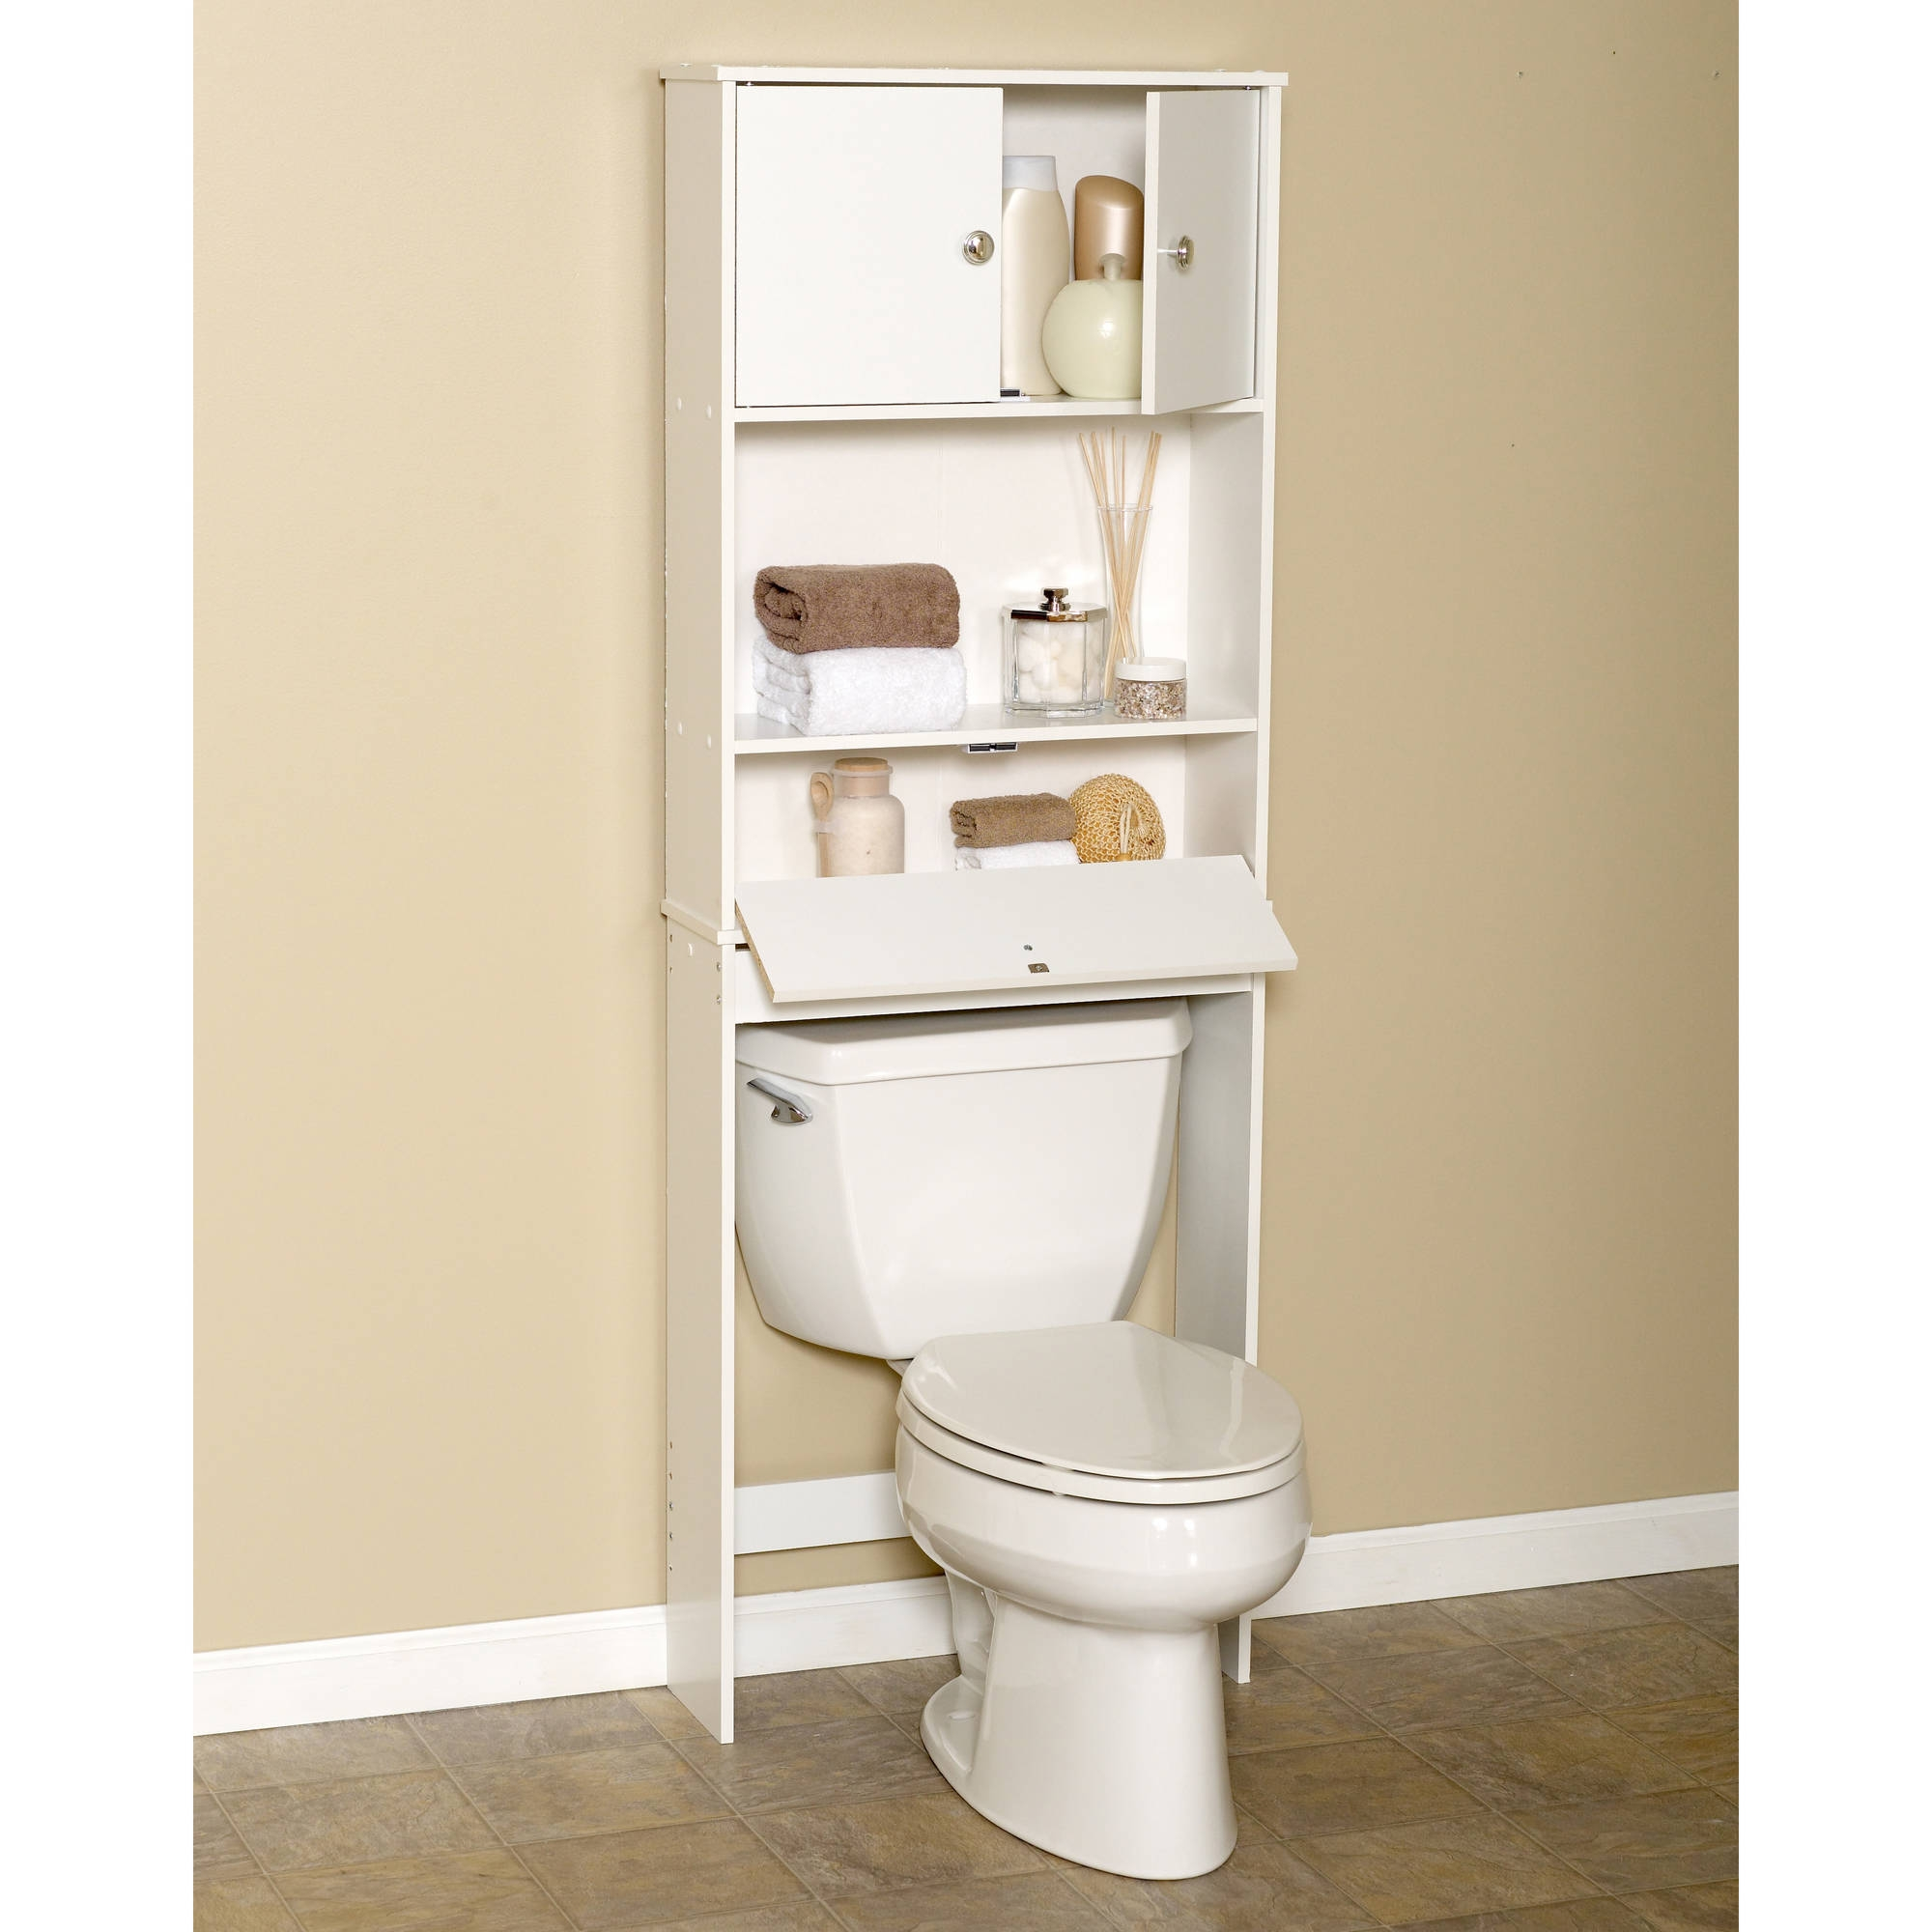 2 Cabinet Bathroom Space Saver2000 X 2000